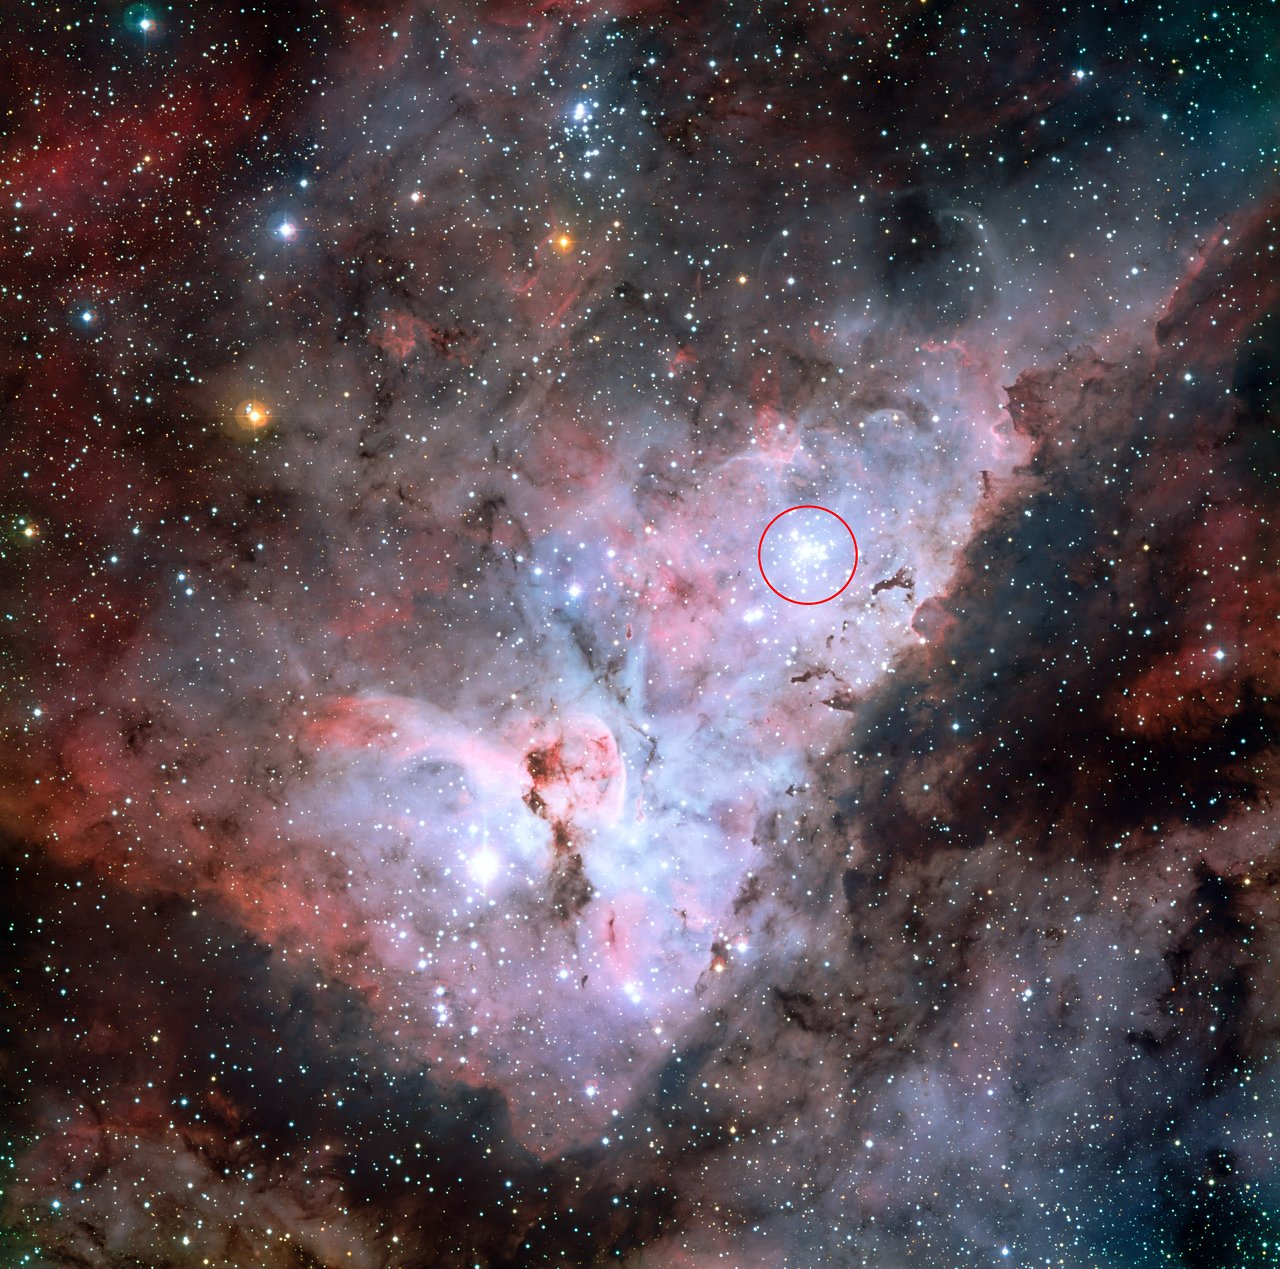 Trumpler 14 in the Carina Nebula